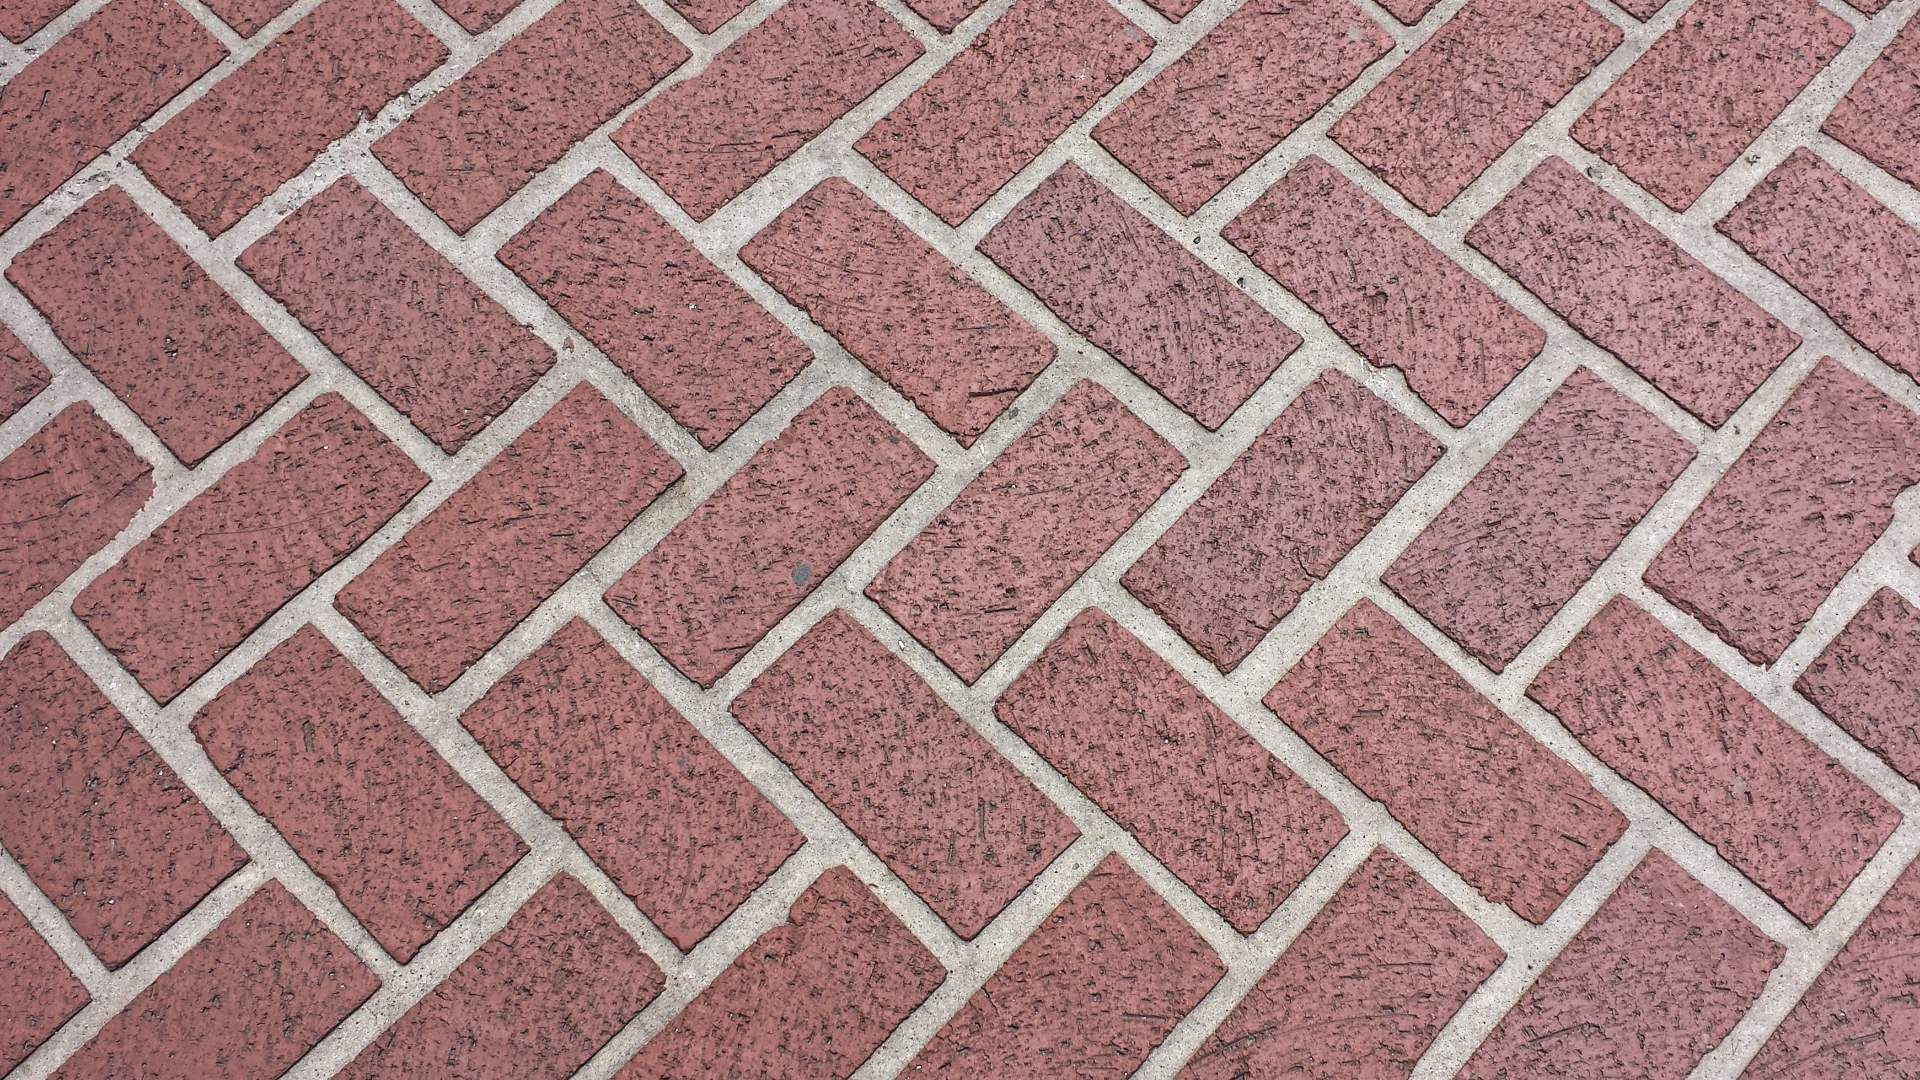 can you grout pavers and how long does